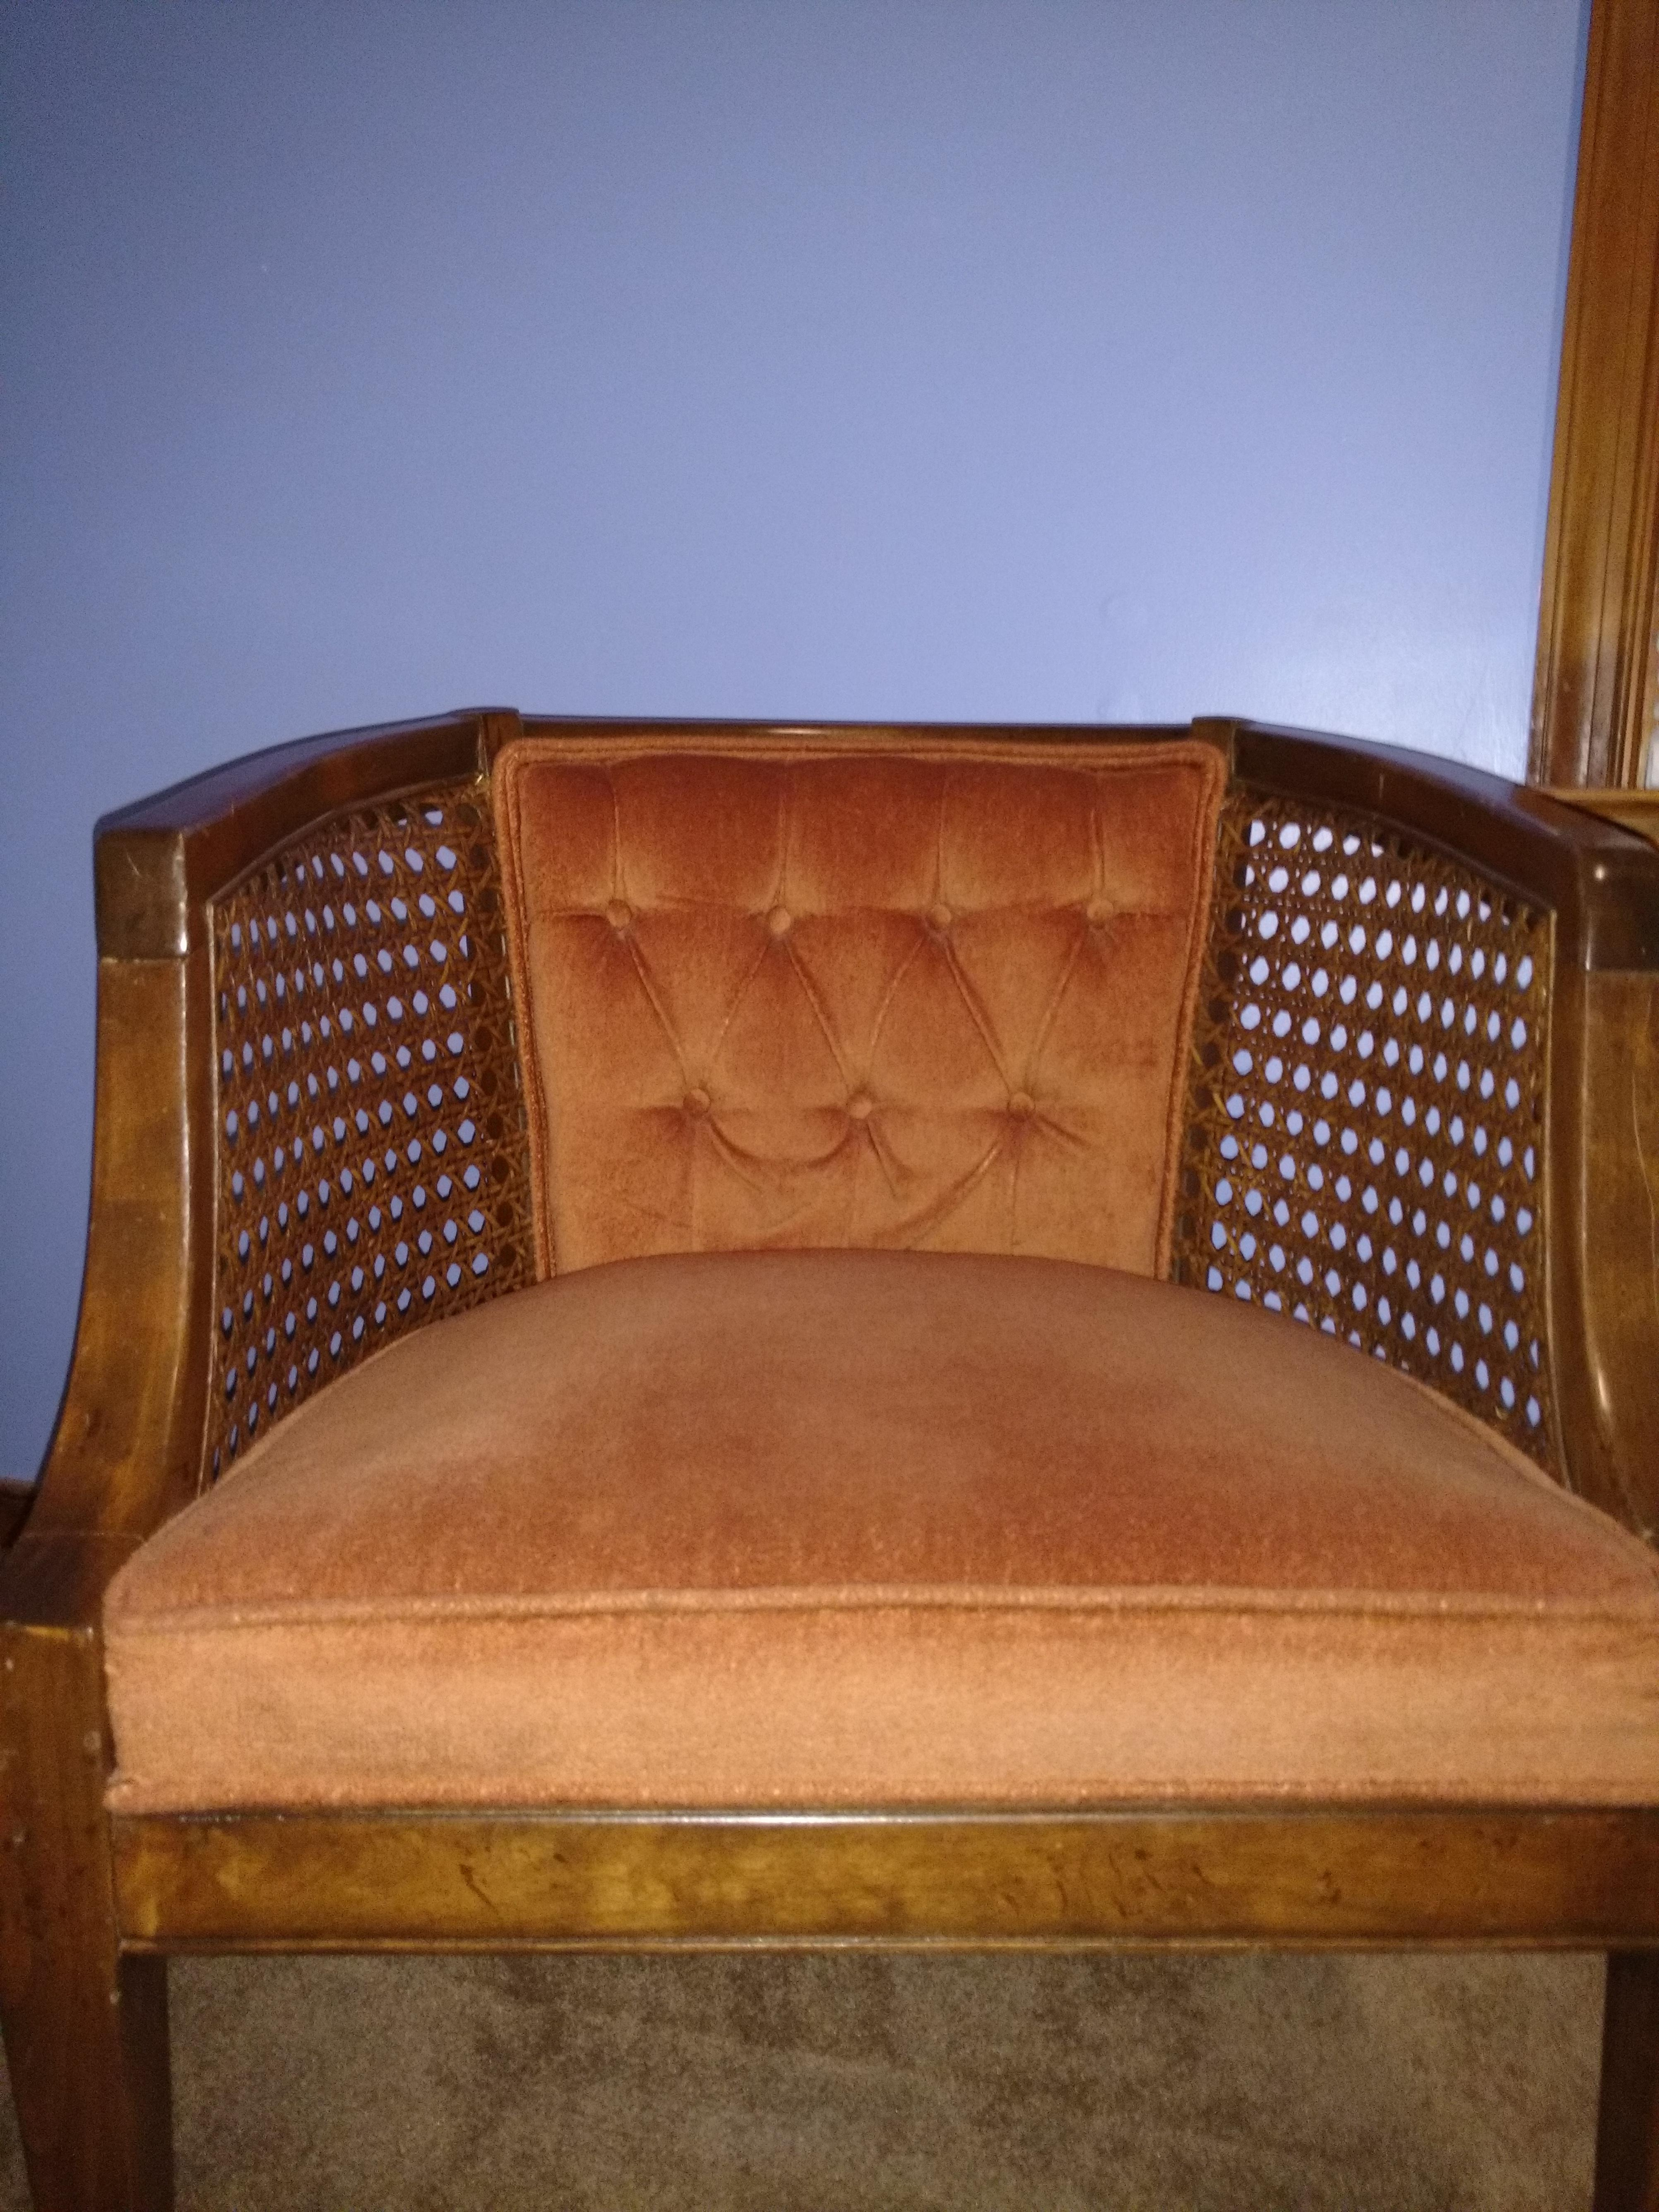 Superior Vintage Mid Century Modern Barrelback Cane Chair   Image 3 Of 9